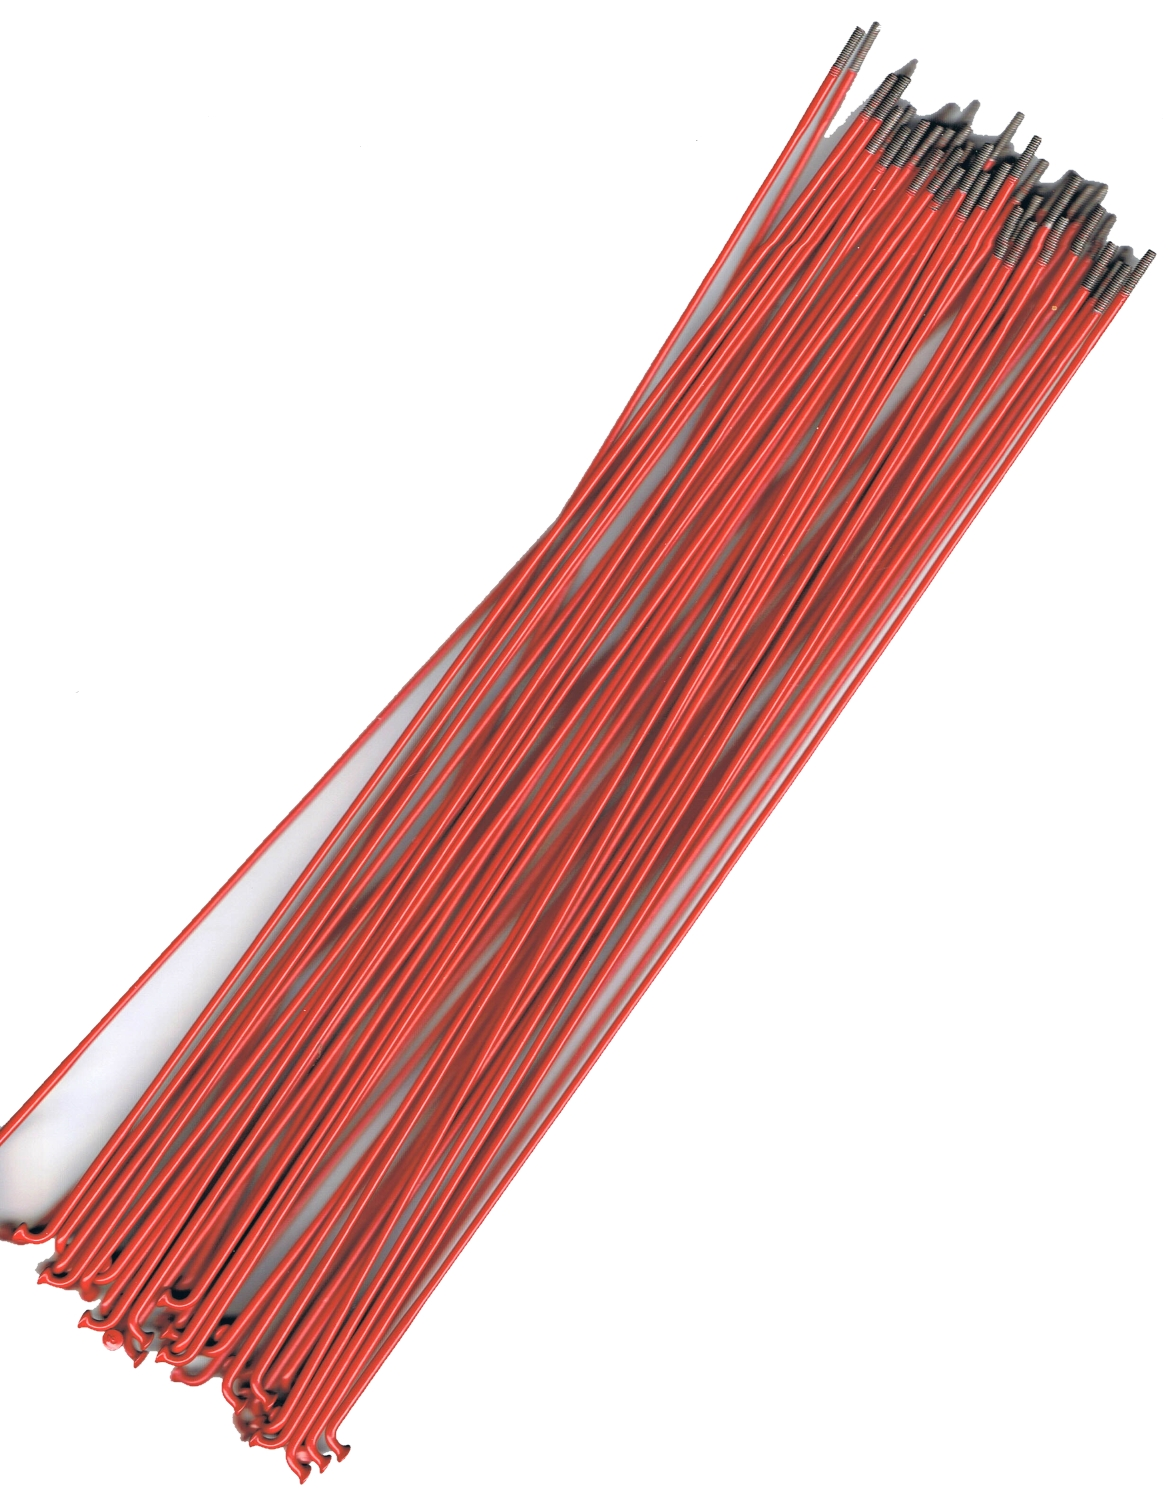 American Classic Red Butted Spokes 258 - 290mm J Bend 14 - 16g